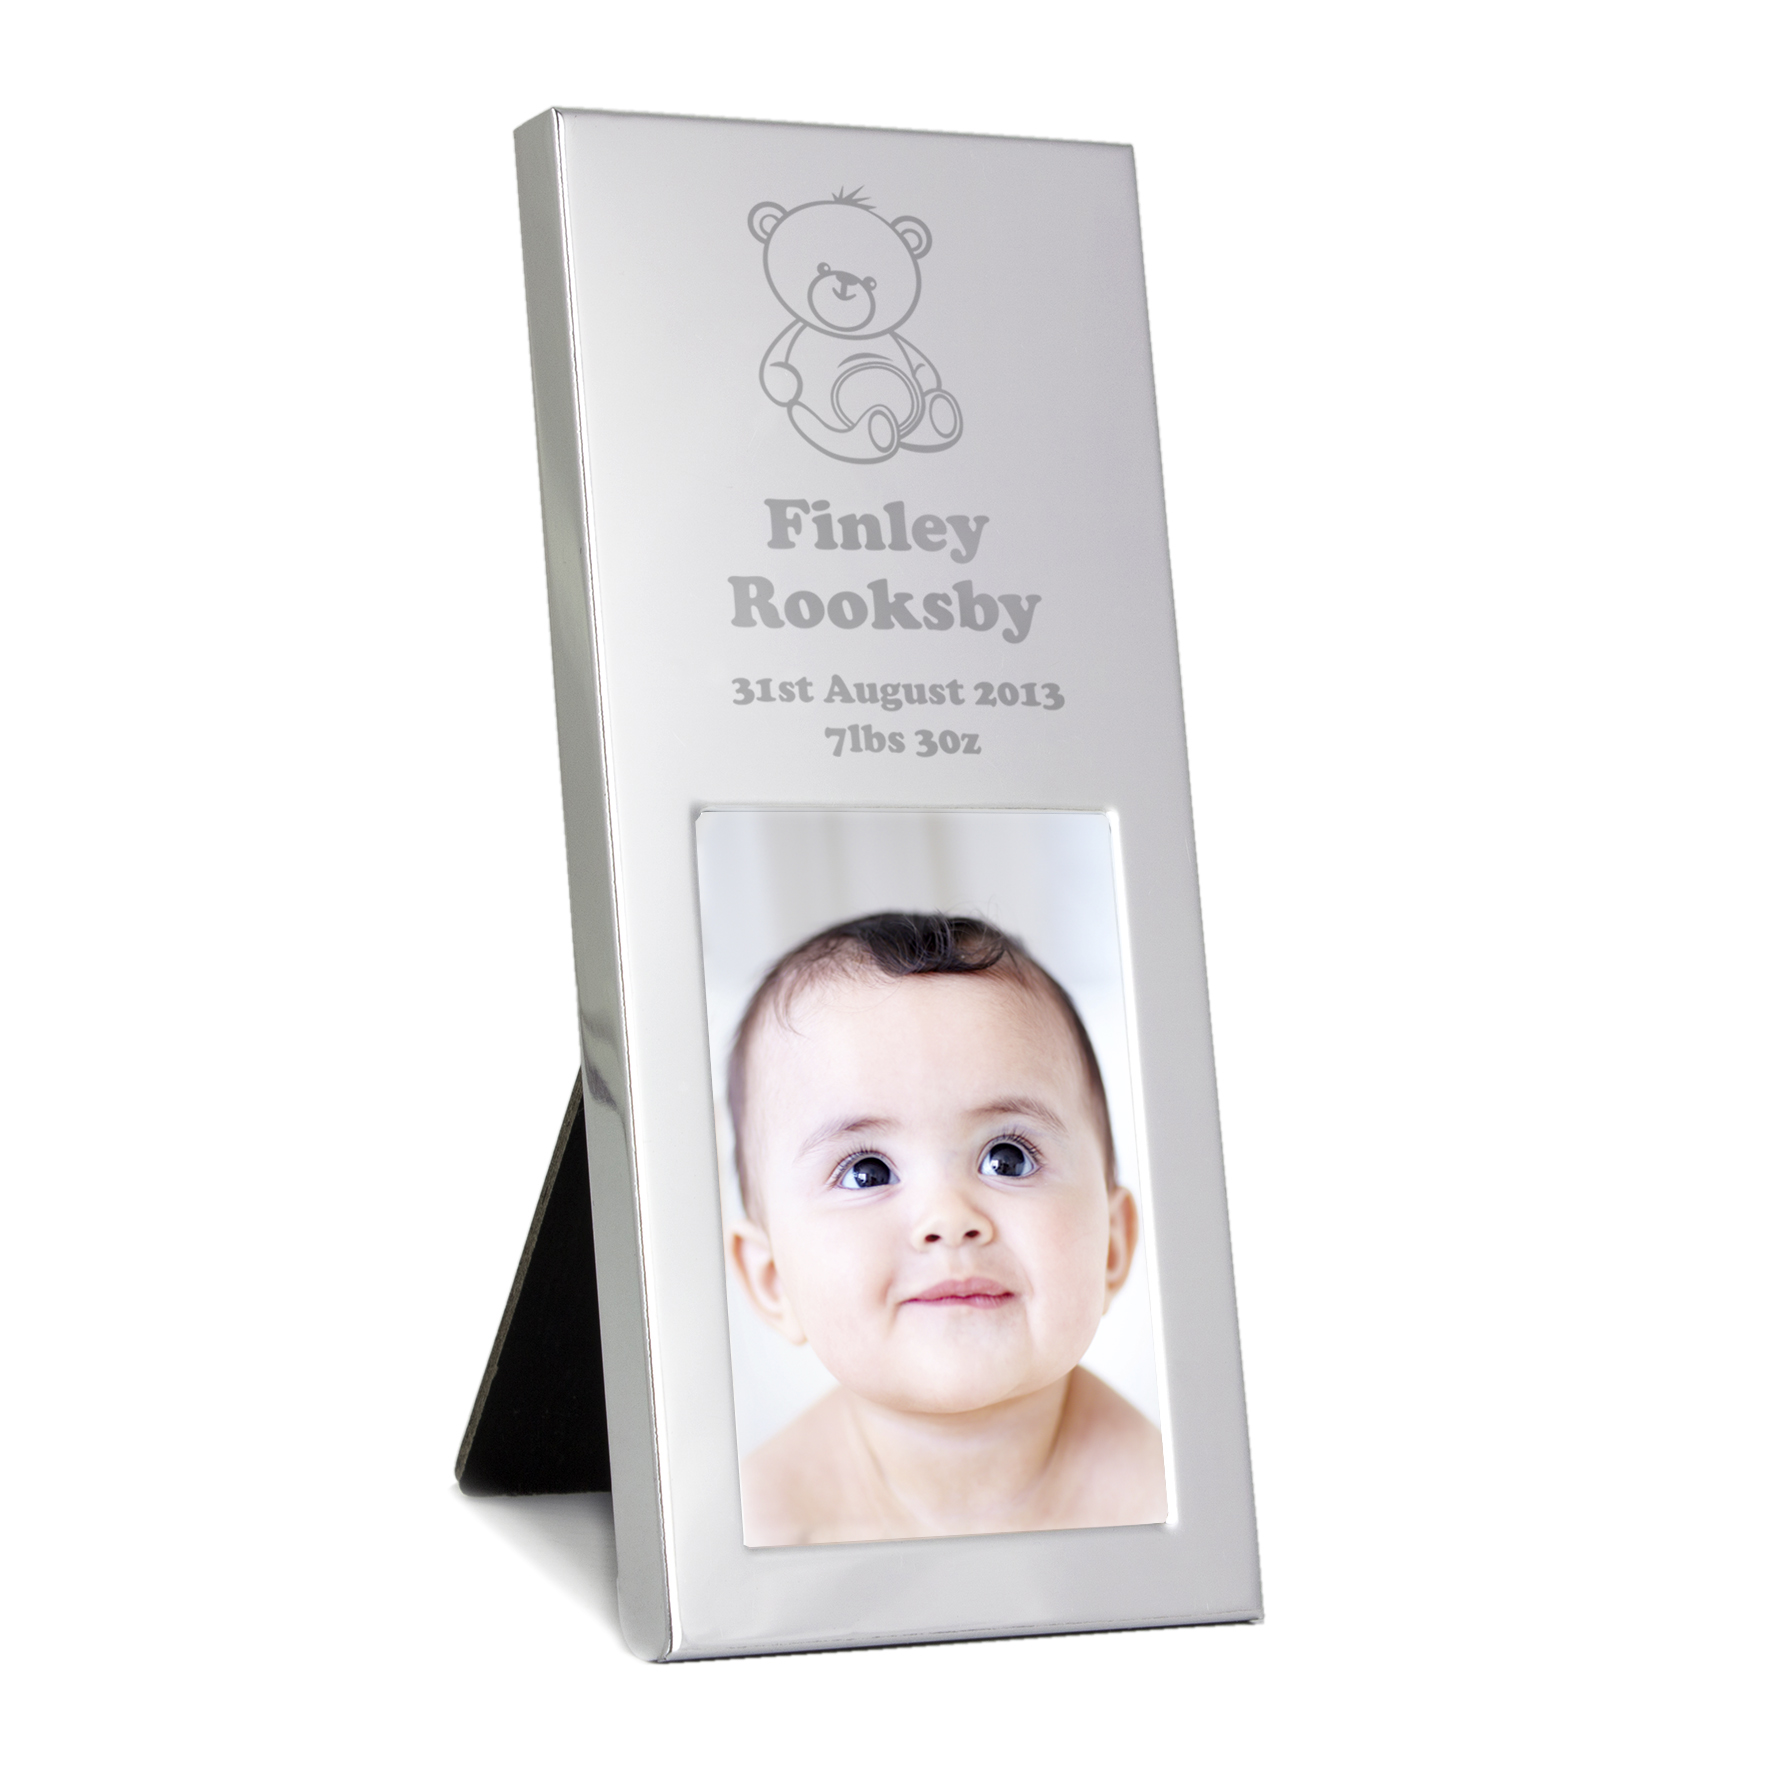 Engraved Teddy Small Silver 2x3 Frame